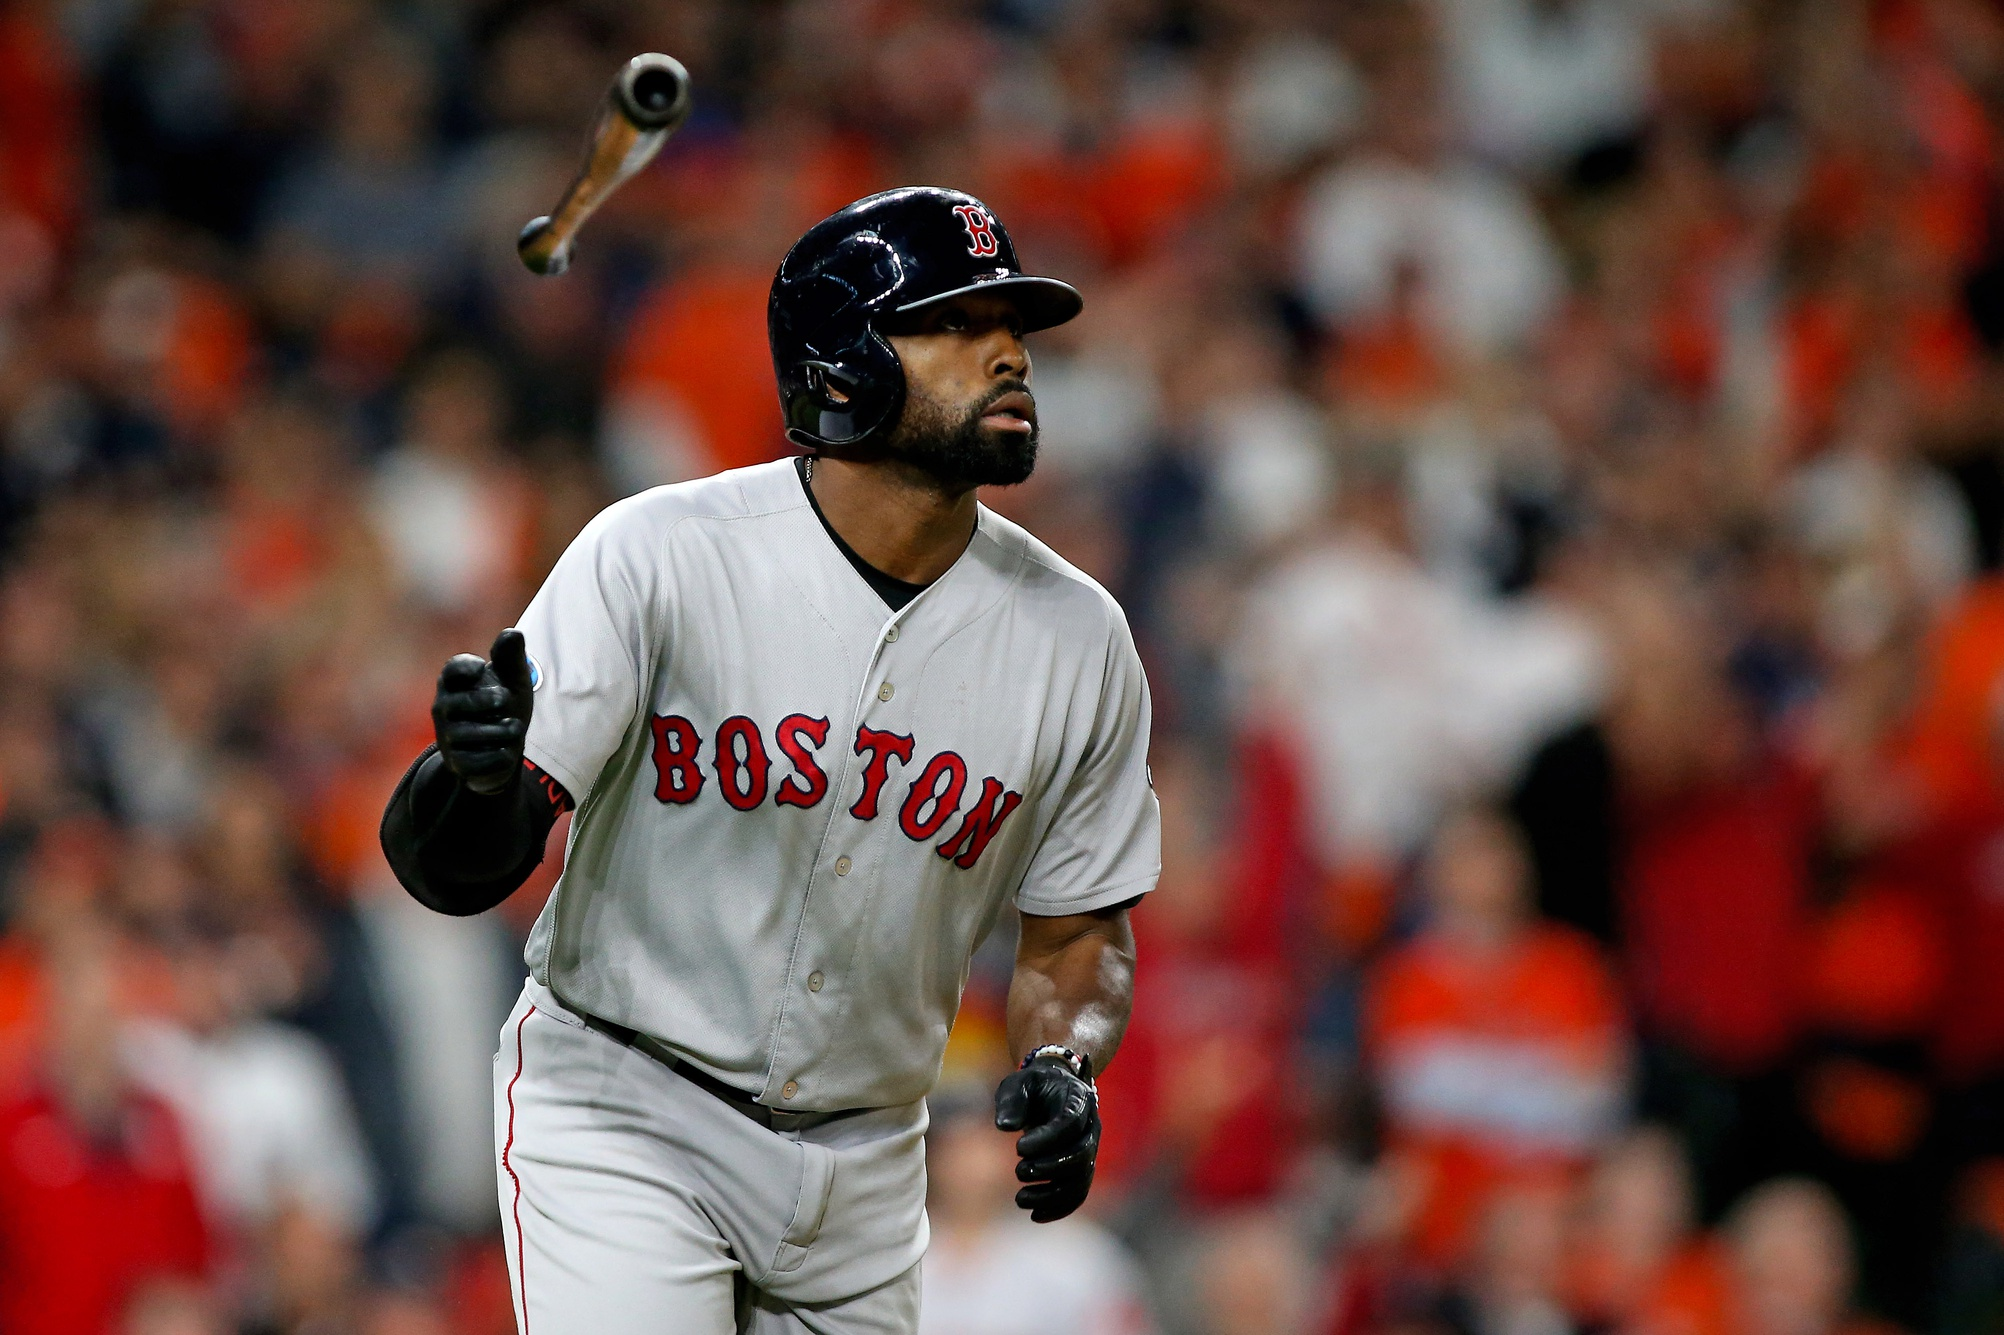 Red Sox lineup: Jackie Bradley Jr. to start on bench to open series vs. Astros